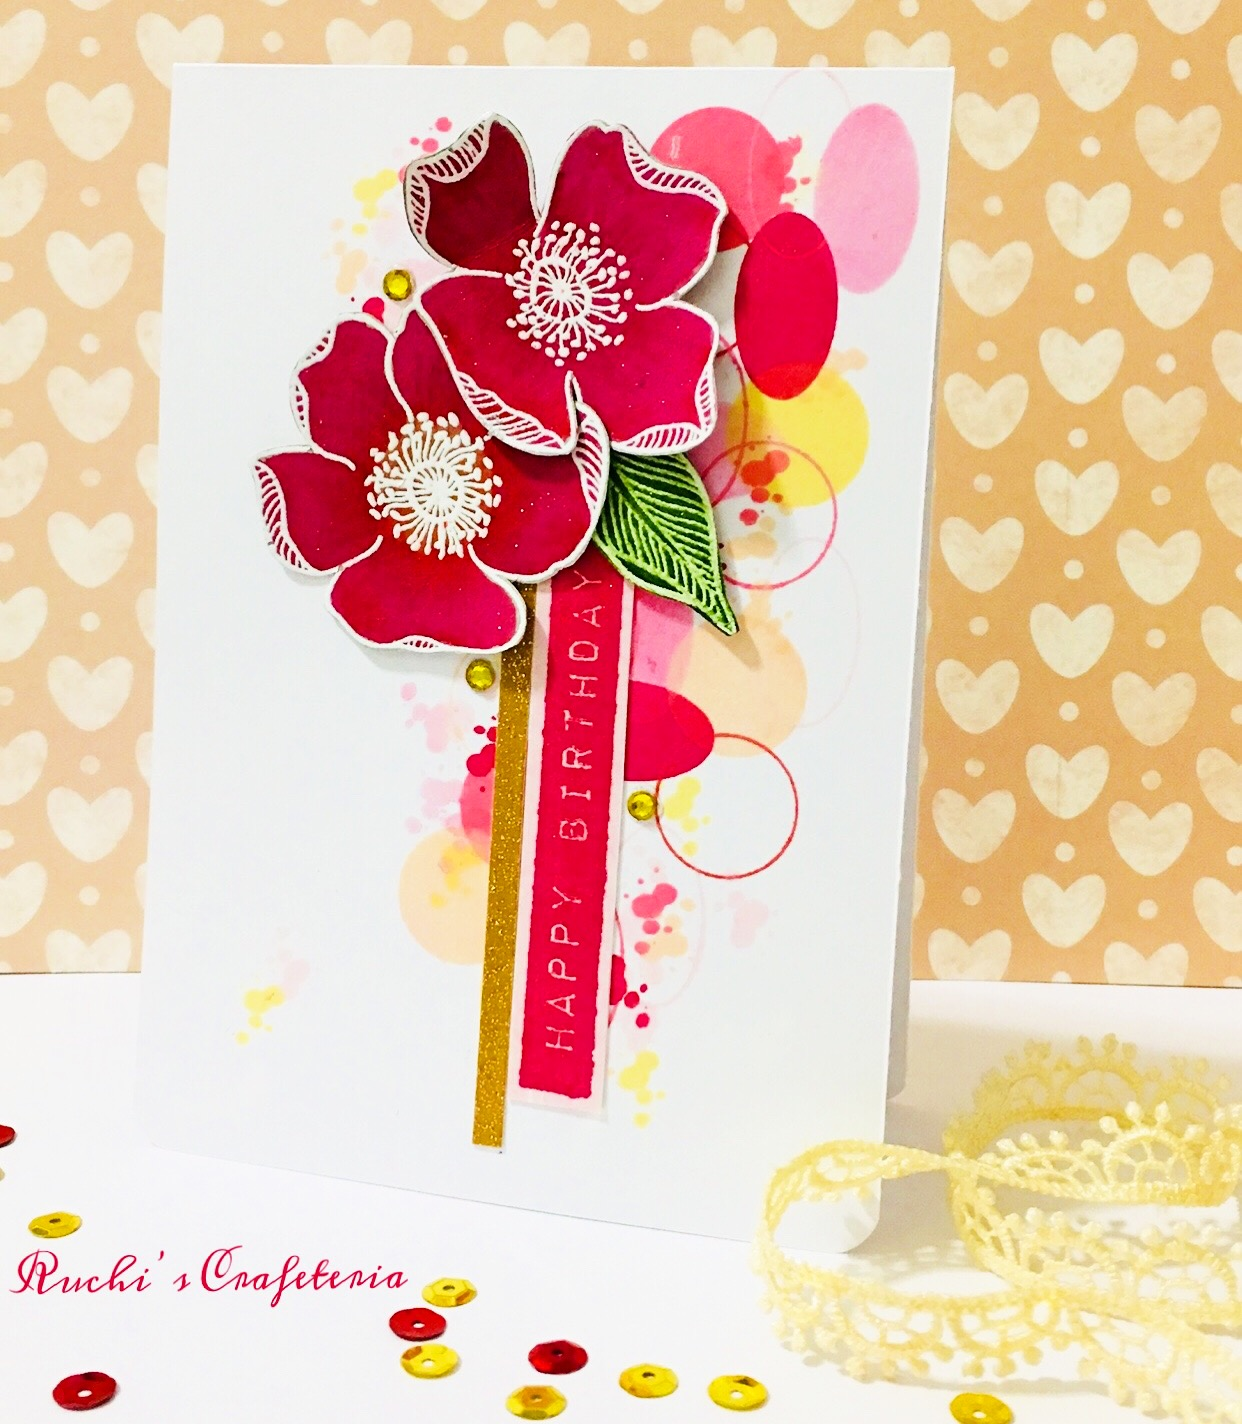 Ruchis crafeteria for this card first i stamped all the flowers and leaf which are from altenew adore you stamp seting versamark ink on strathmore watercolor paper and kristyandbryce Choice Image